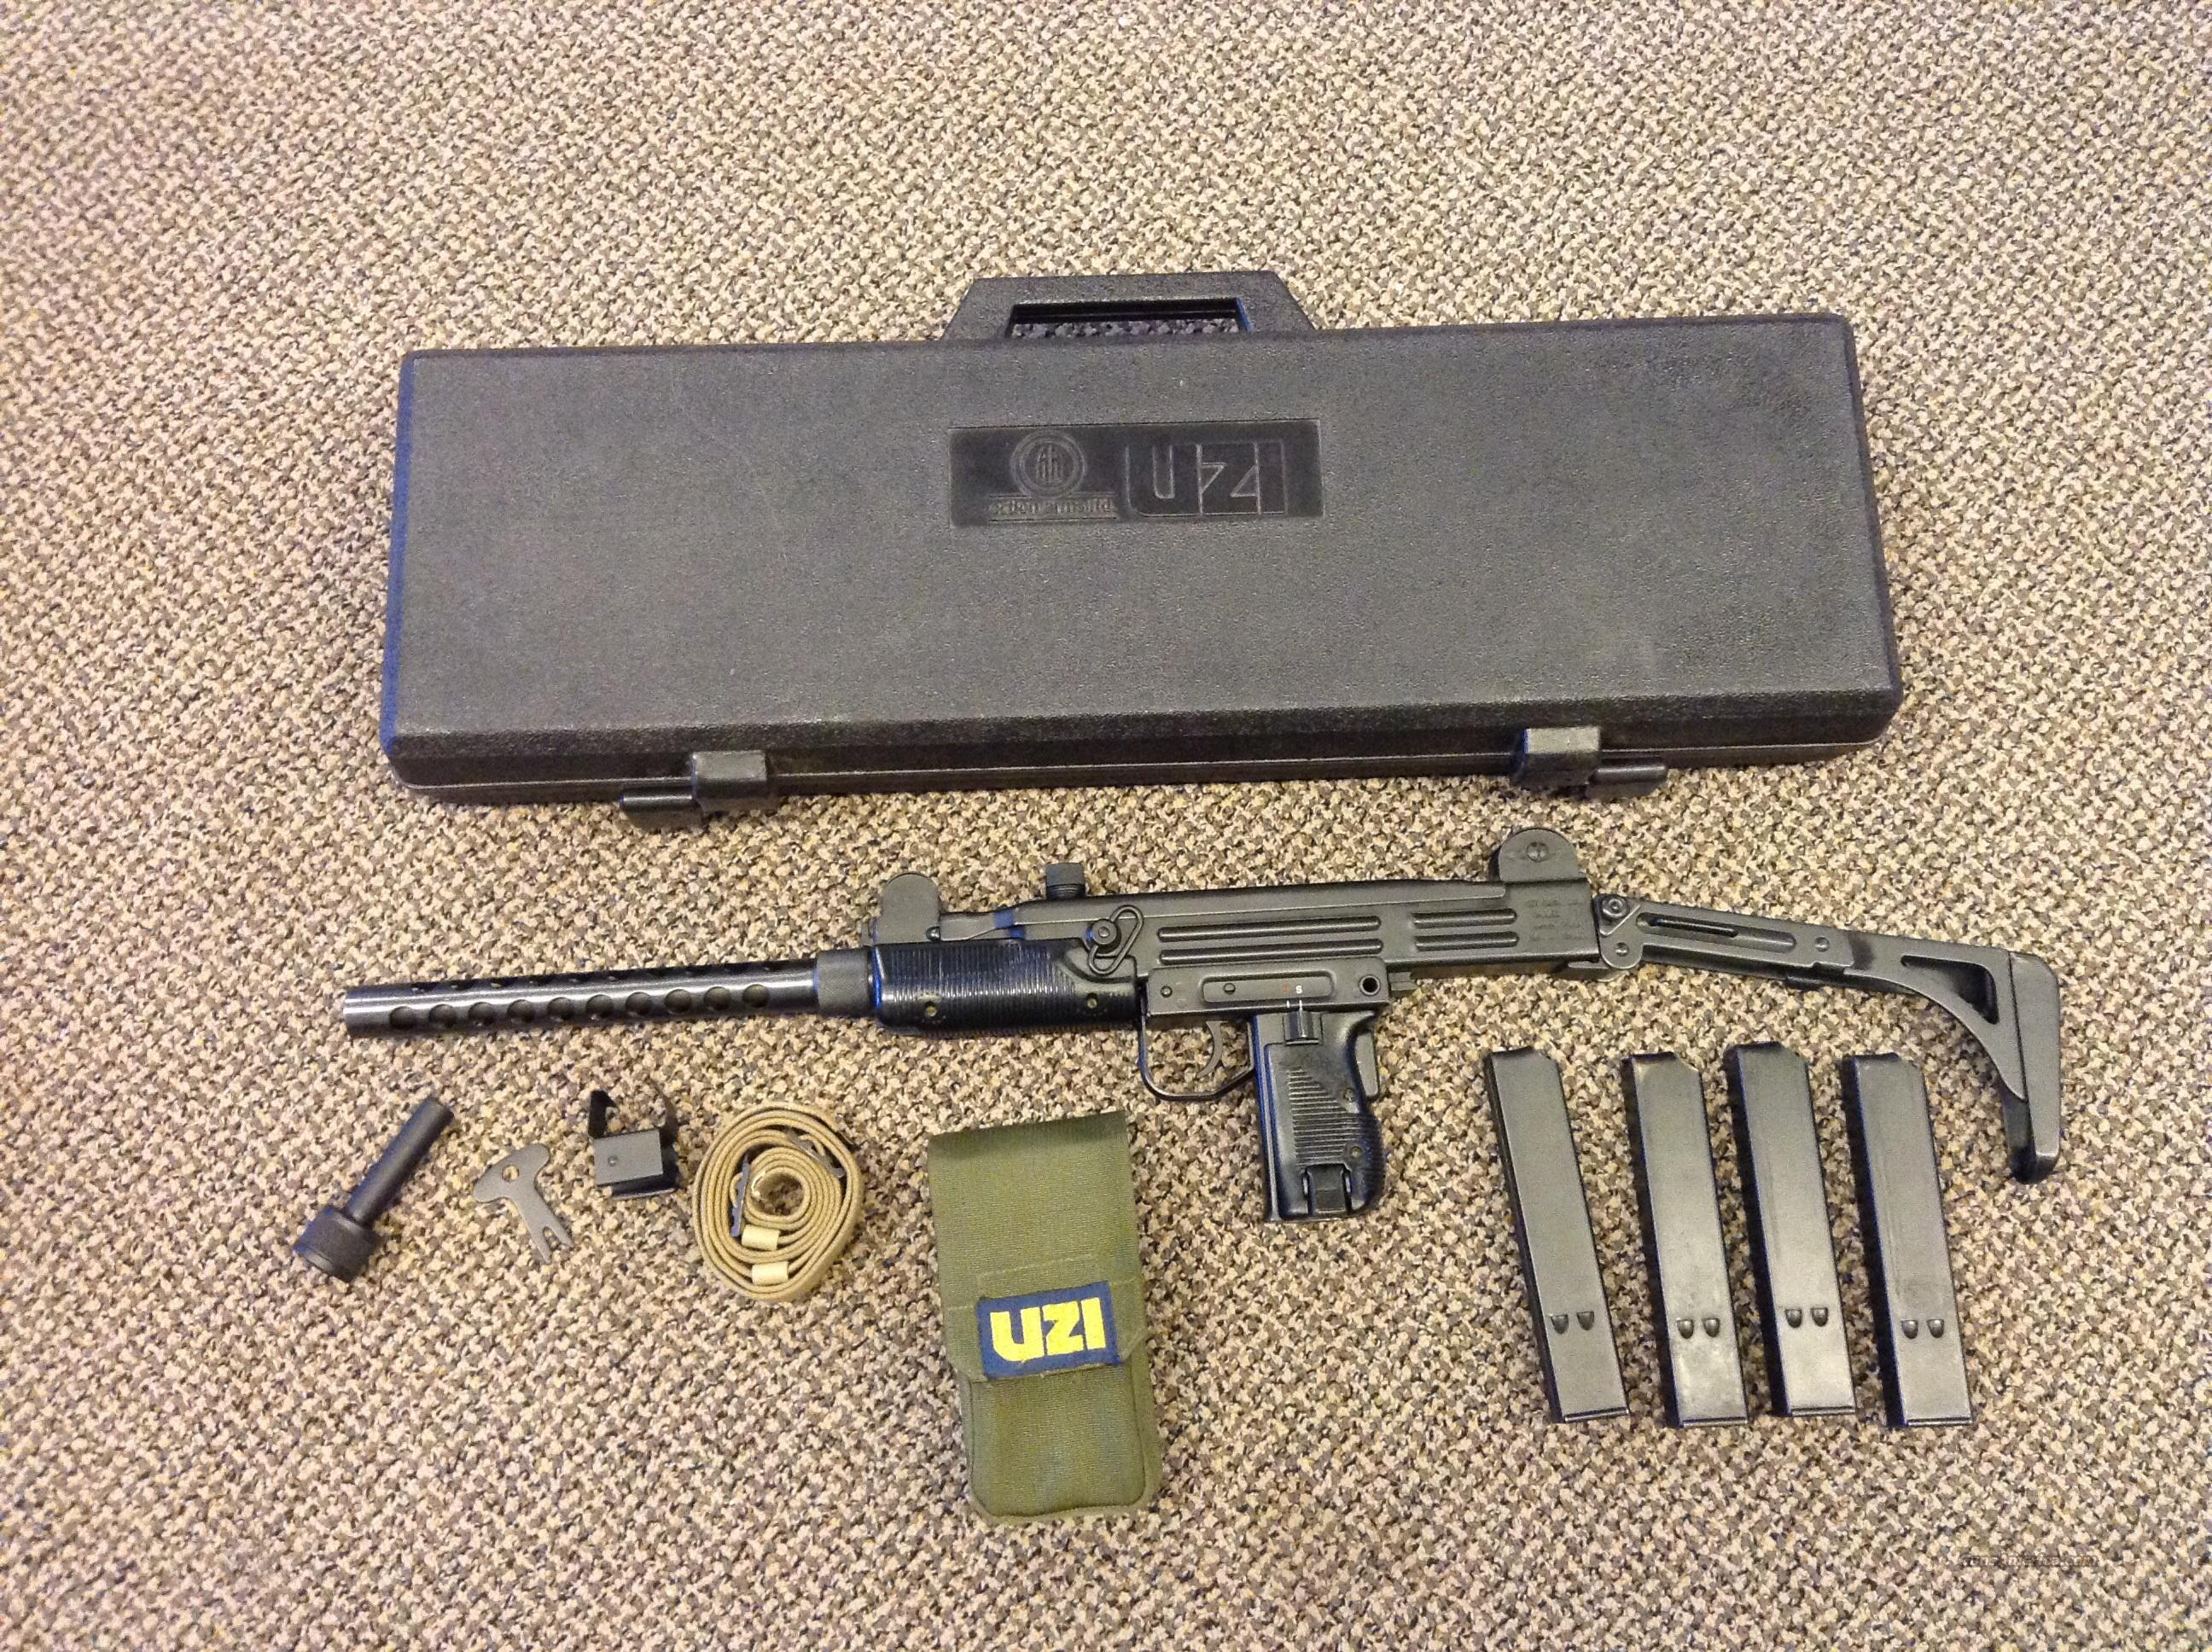 UZI IMI MODEL B 9MM CARBINE IMPORT ACTION ARMS PHILADELPHIA, PA  Guns > Rifles > IMI Rifles